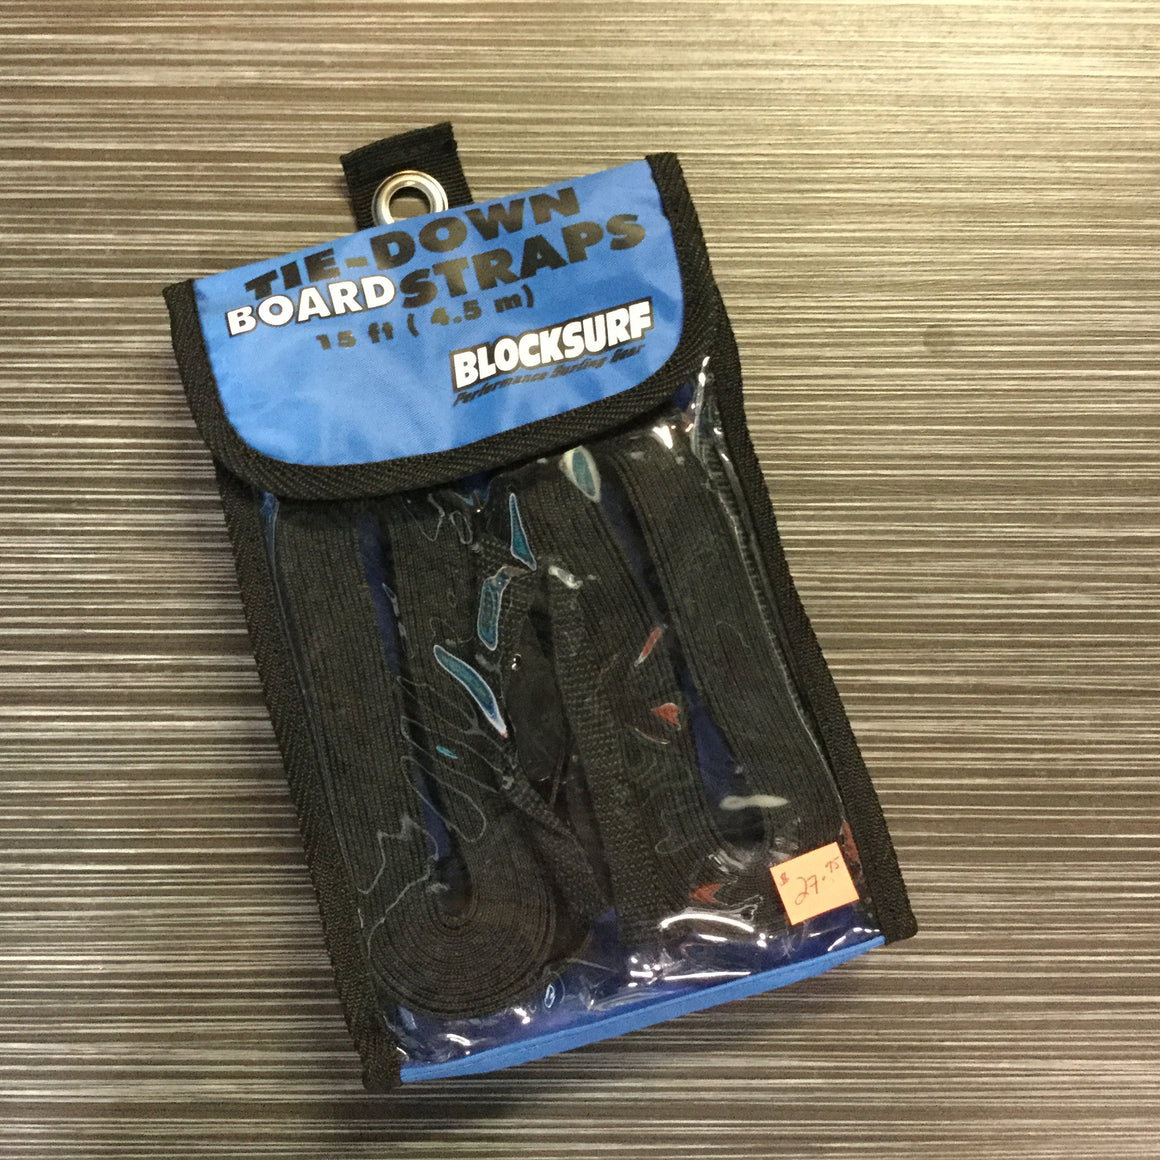 Tie Downs / Straps - Blocksurf 15ft / 4.5m